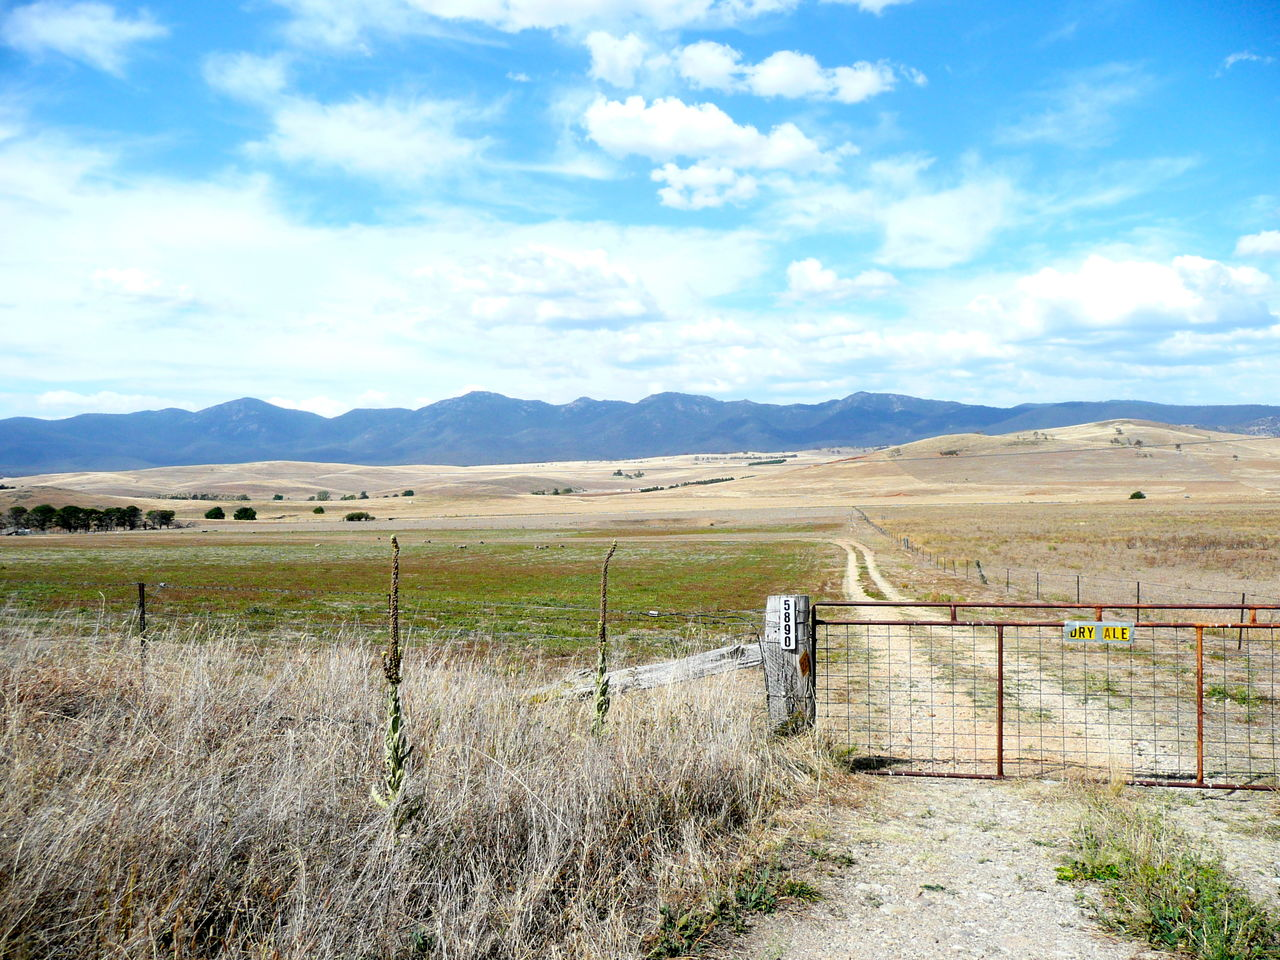 Agriculture Australian Landscape Beauty In Nature Cloud - Sky Day Emptiness Landscape Mountain Mountain Range Nature No People Outdoors Rusty Gate Scenics Sheep And Wheat Country Australia Sky Tranquil Scene Tranquility Vast, Empty Land